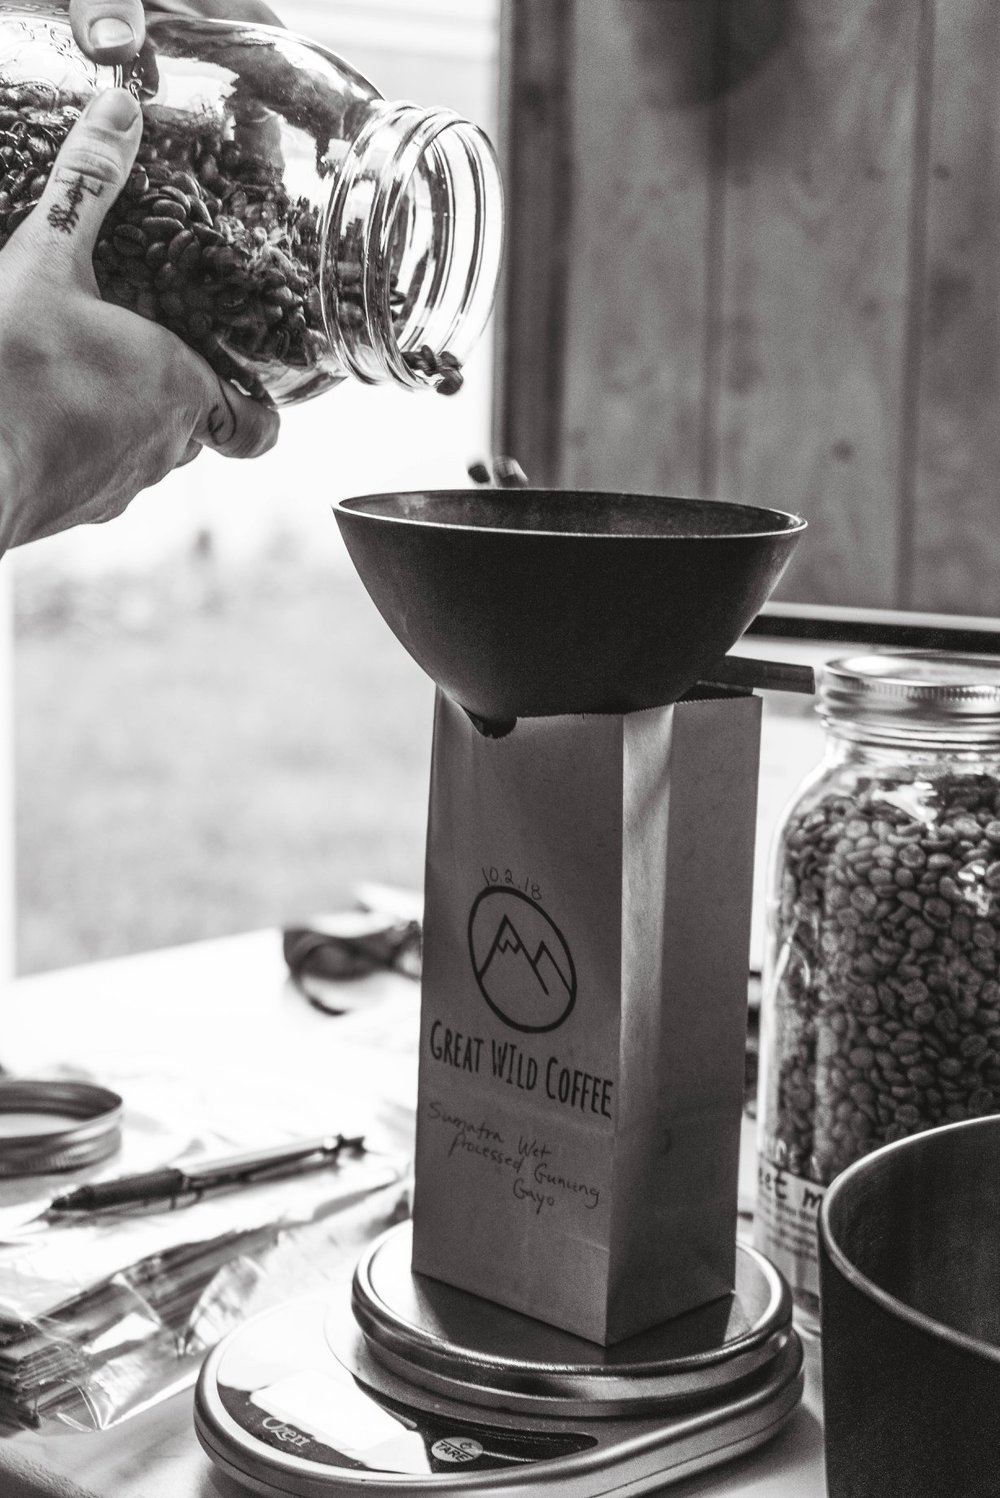 Great Wild's Calling - Our coffee is your coffee.We create roasts that we want to drink every morning.We use beans that are ethically and sustainably grown, harvested and supplied.We work to uphold the quality of each batch to be the best we can possibly supply.We are 100% woman owned and operated.We care about every single cup of coffee you drink; from bean to cup.